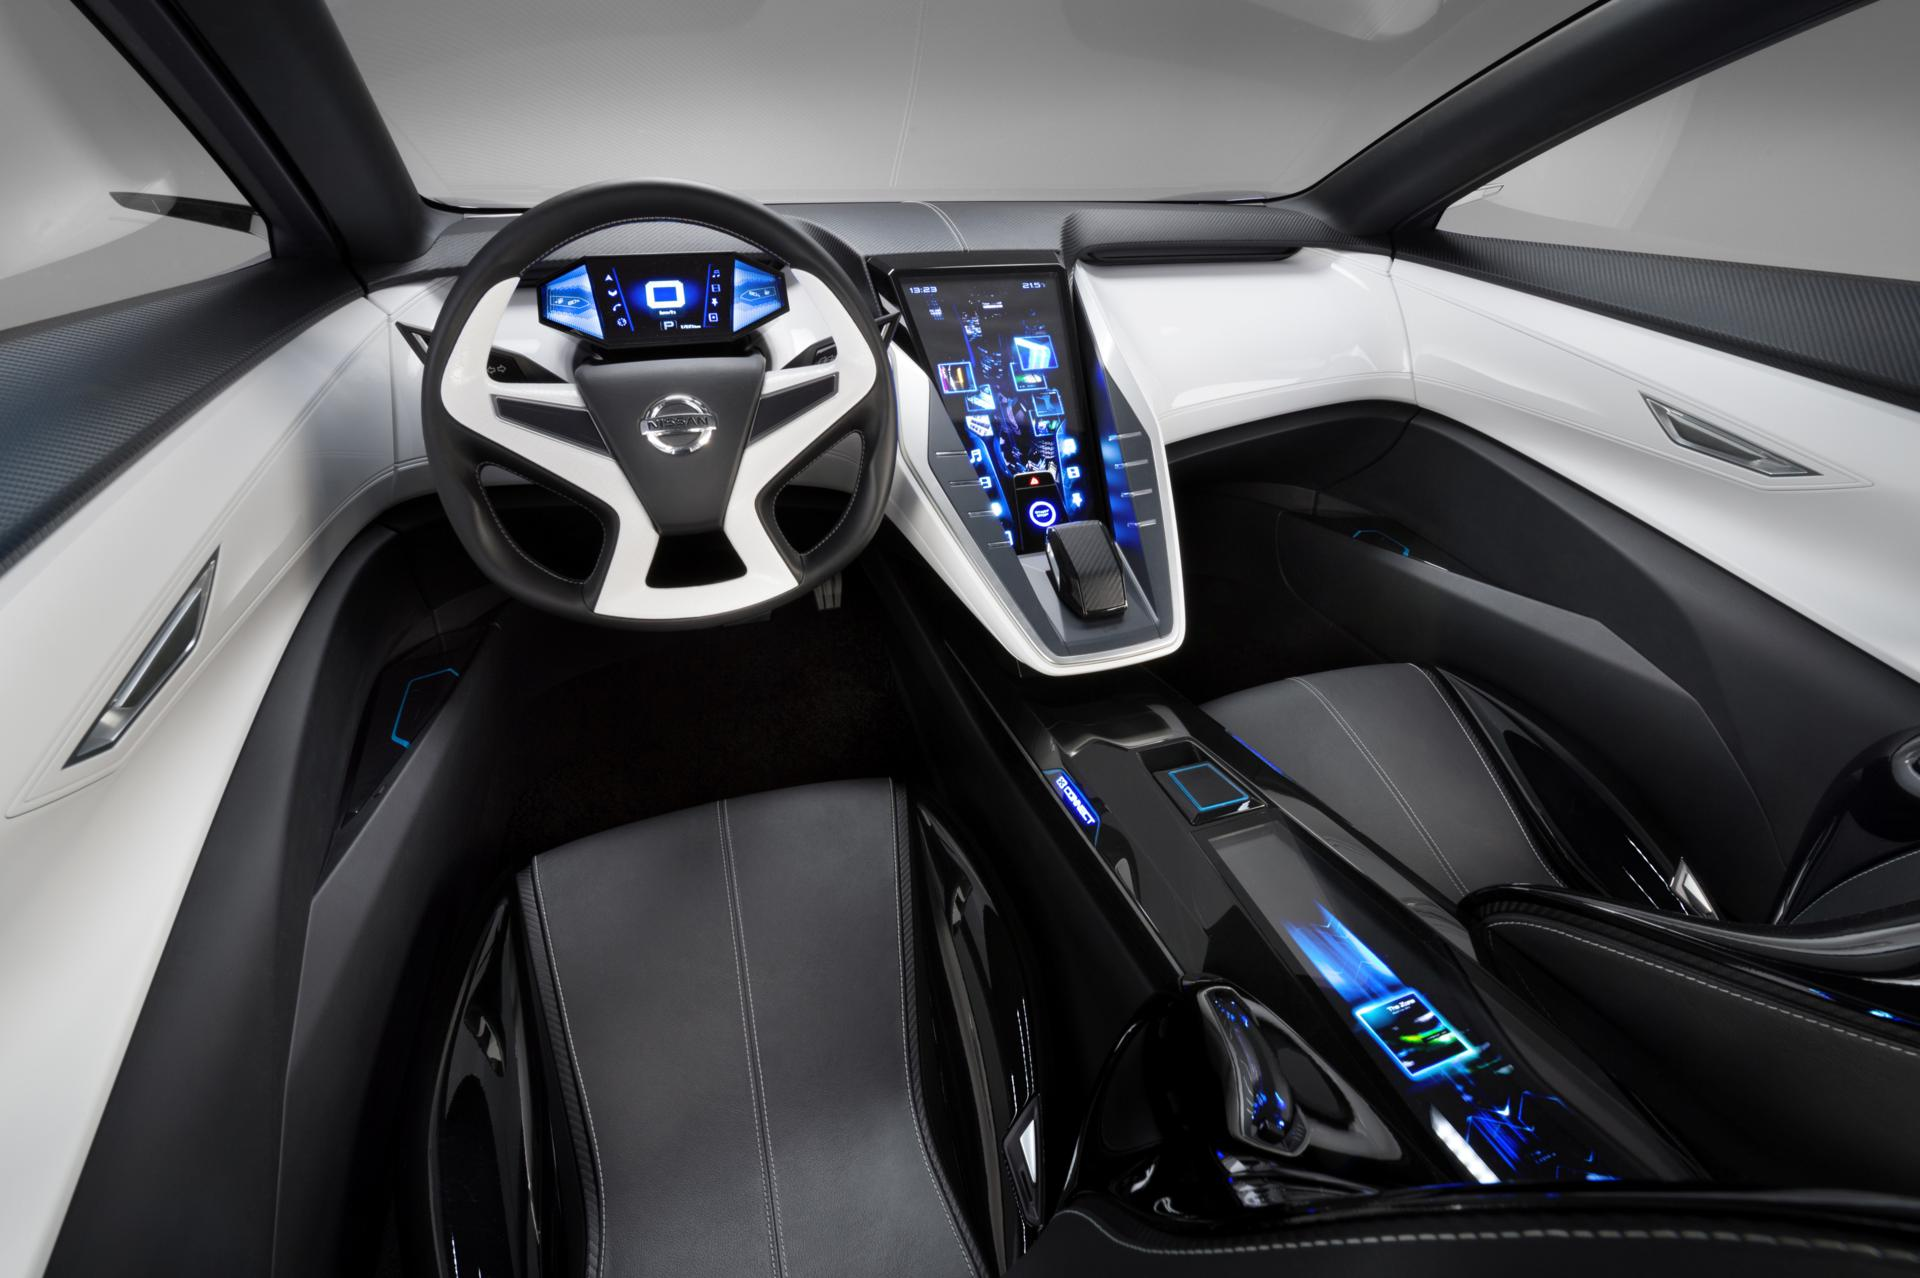 Interior of the Nissan Friend Me Concept Car